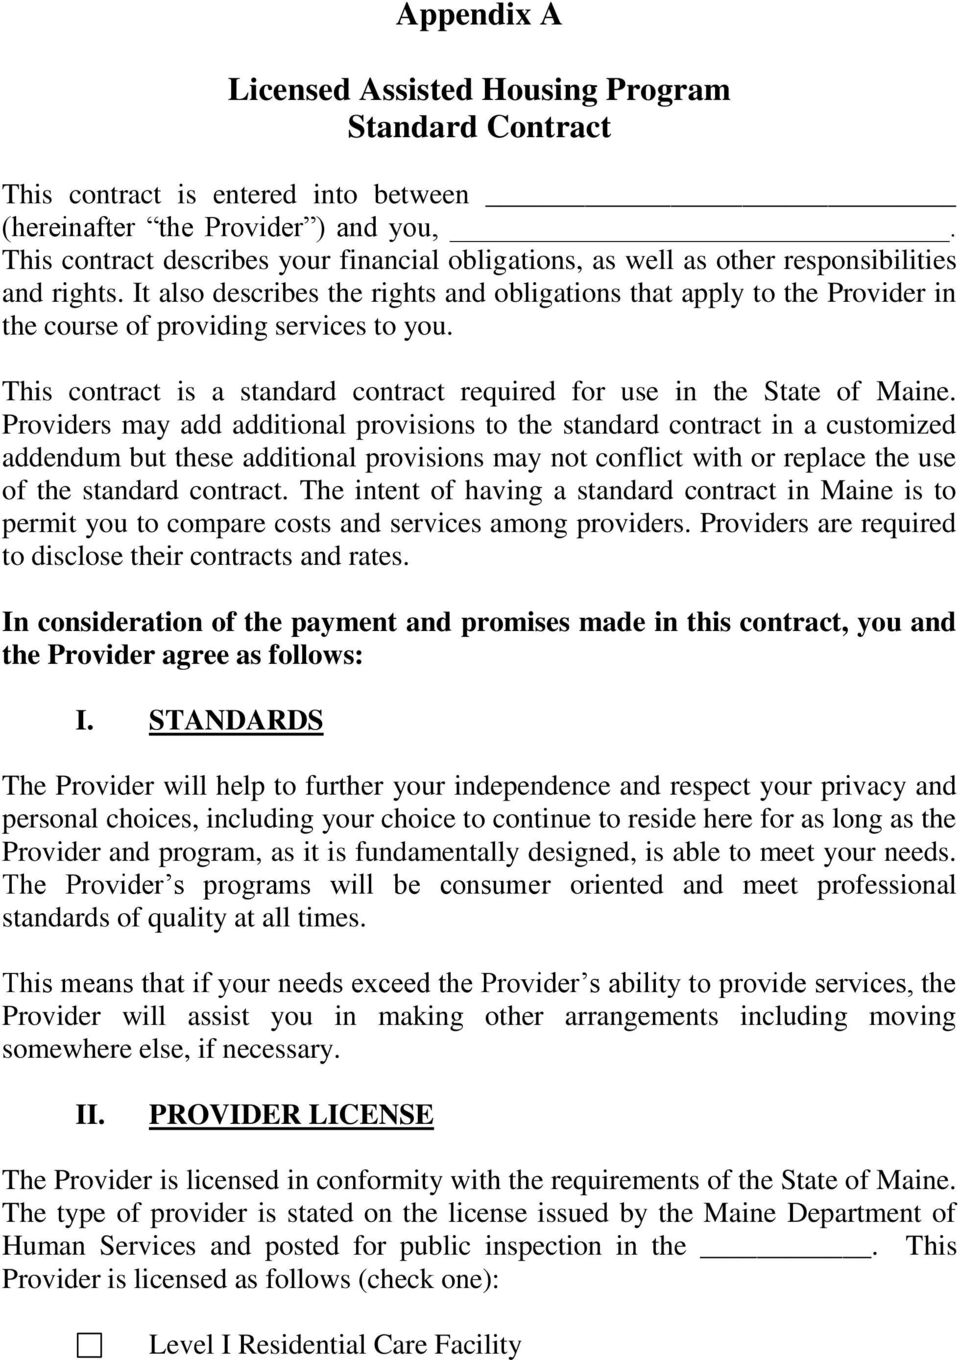 It also describes the rights and obligations that apply to the Provider in the course of providing services to you. This contract is a standard contract required for use in the State of Maine.